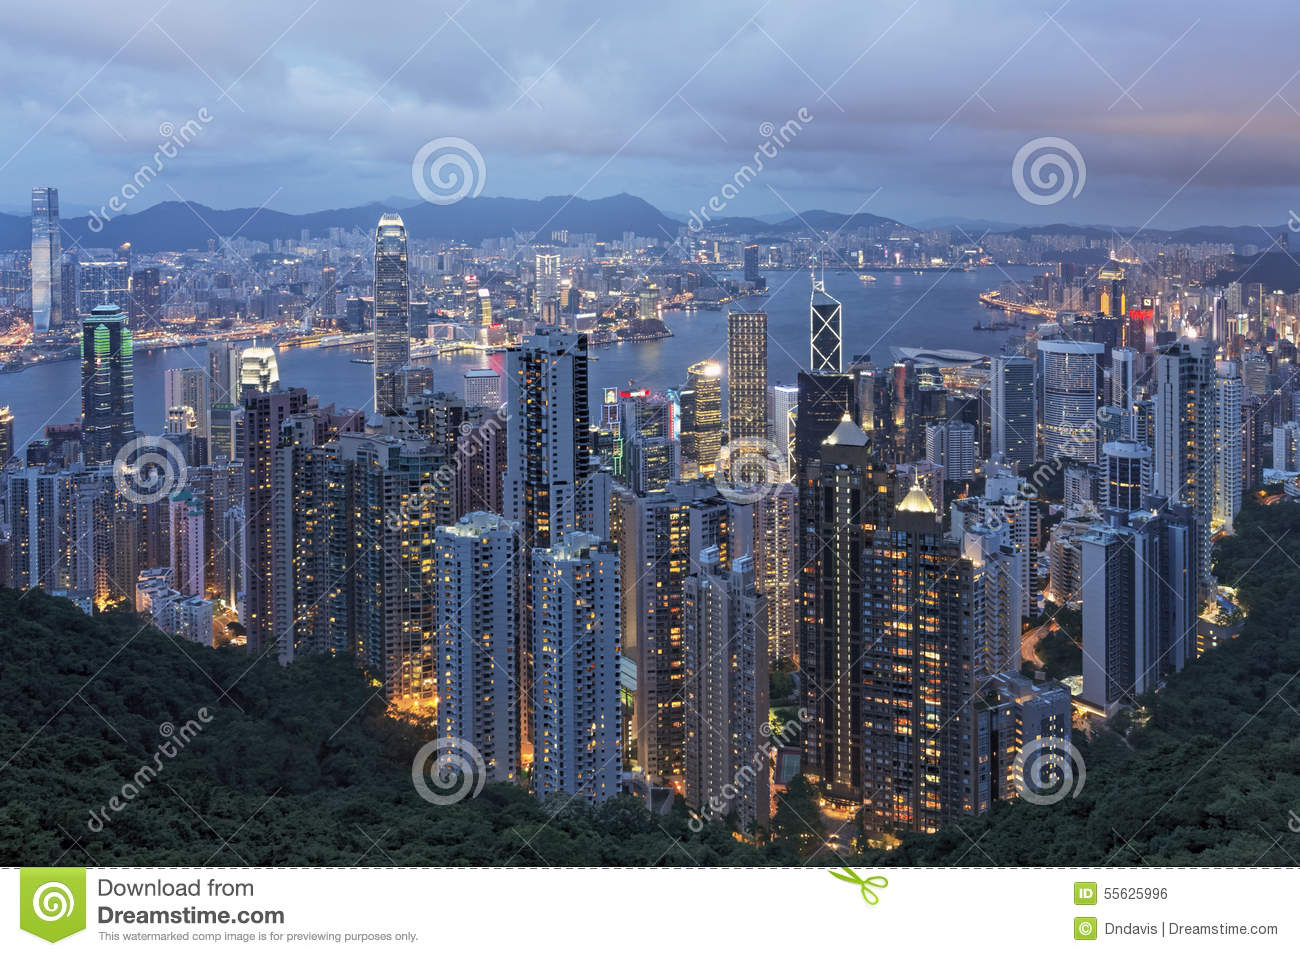 Hong Kong Island and Victoria Harbor as viewed from The Peak